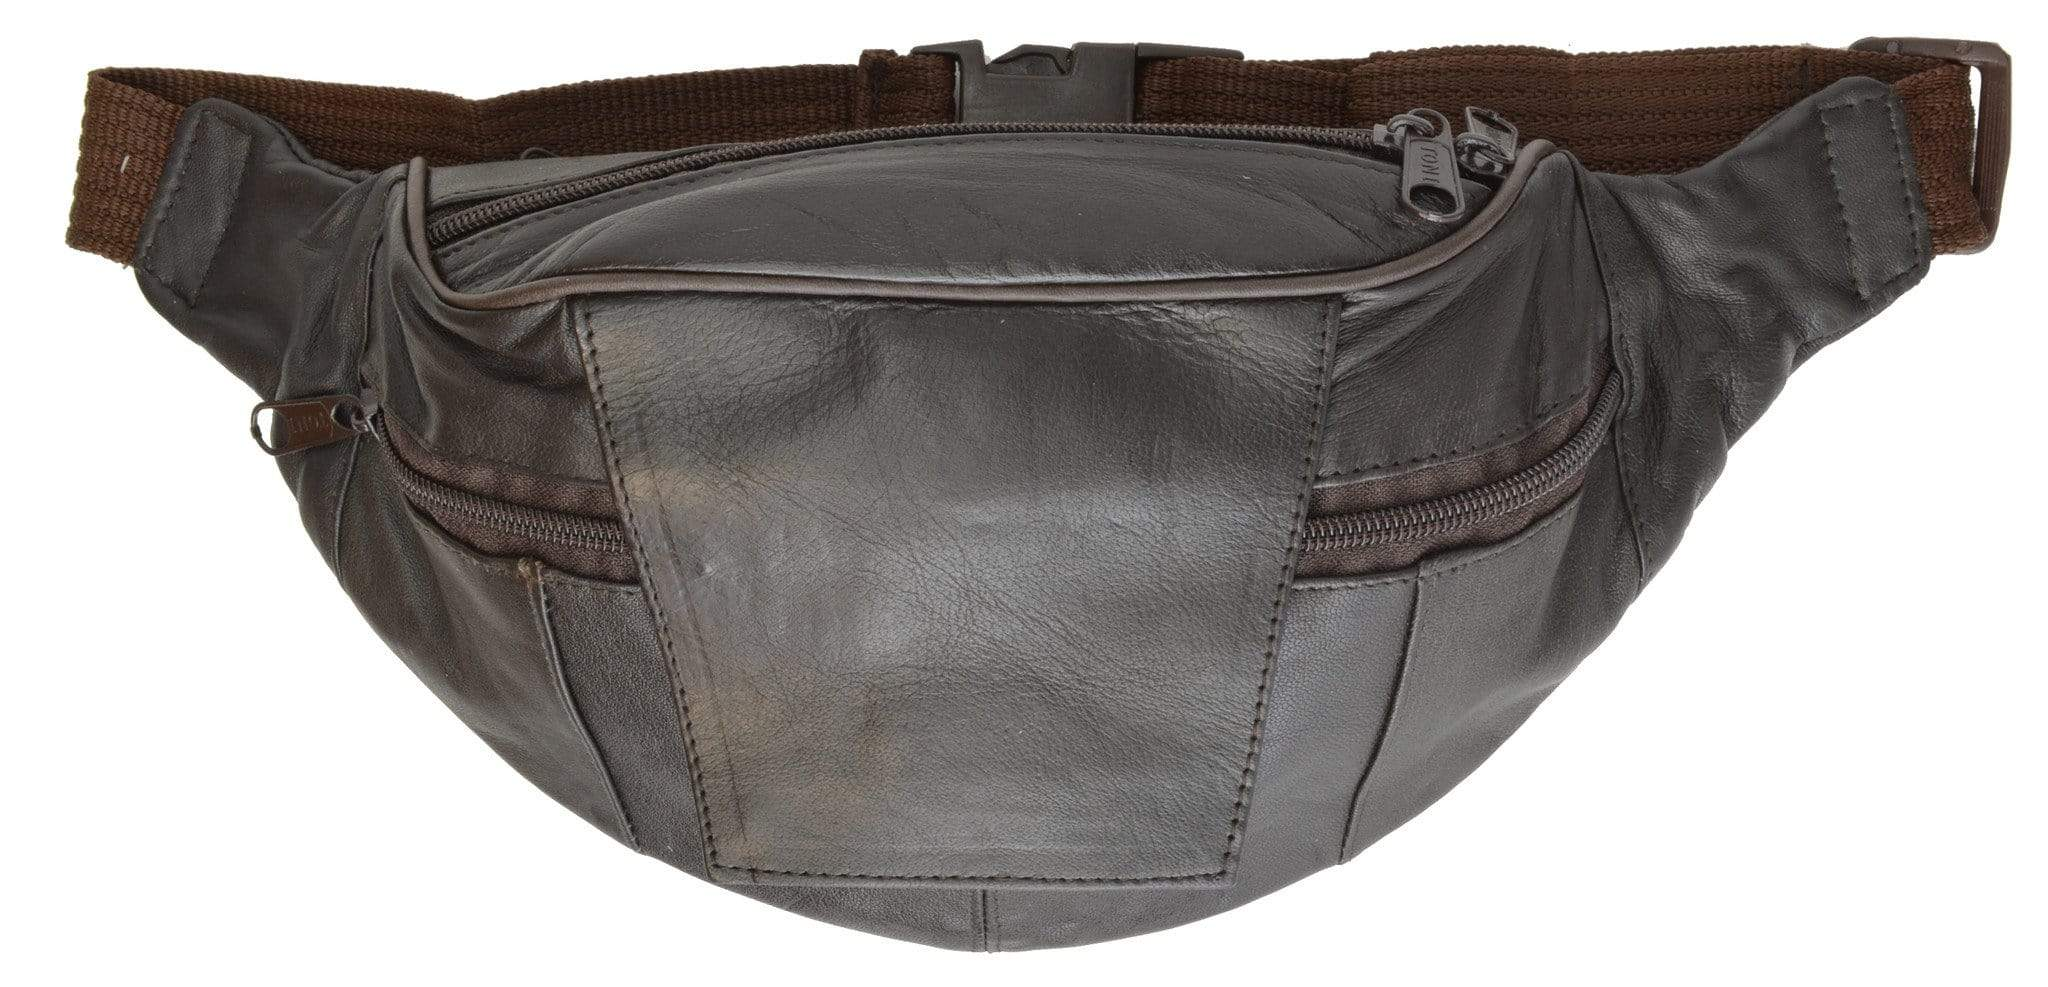 Leather Fanny Pack Waist Bag CellPhone Pouch adjustable Waist Strap by Marshal